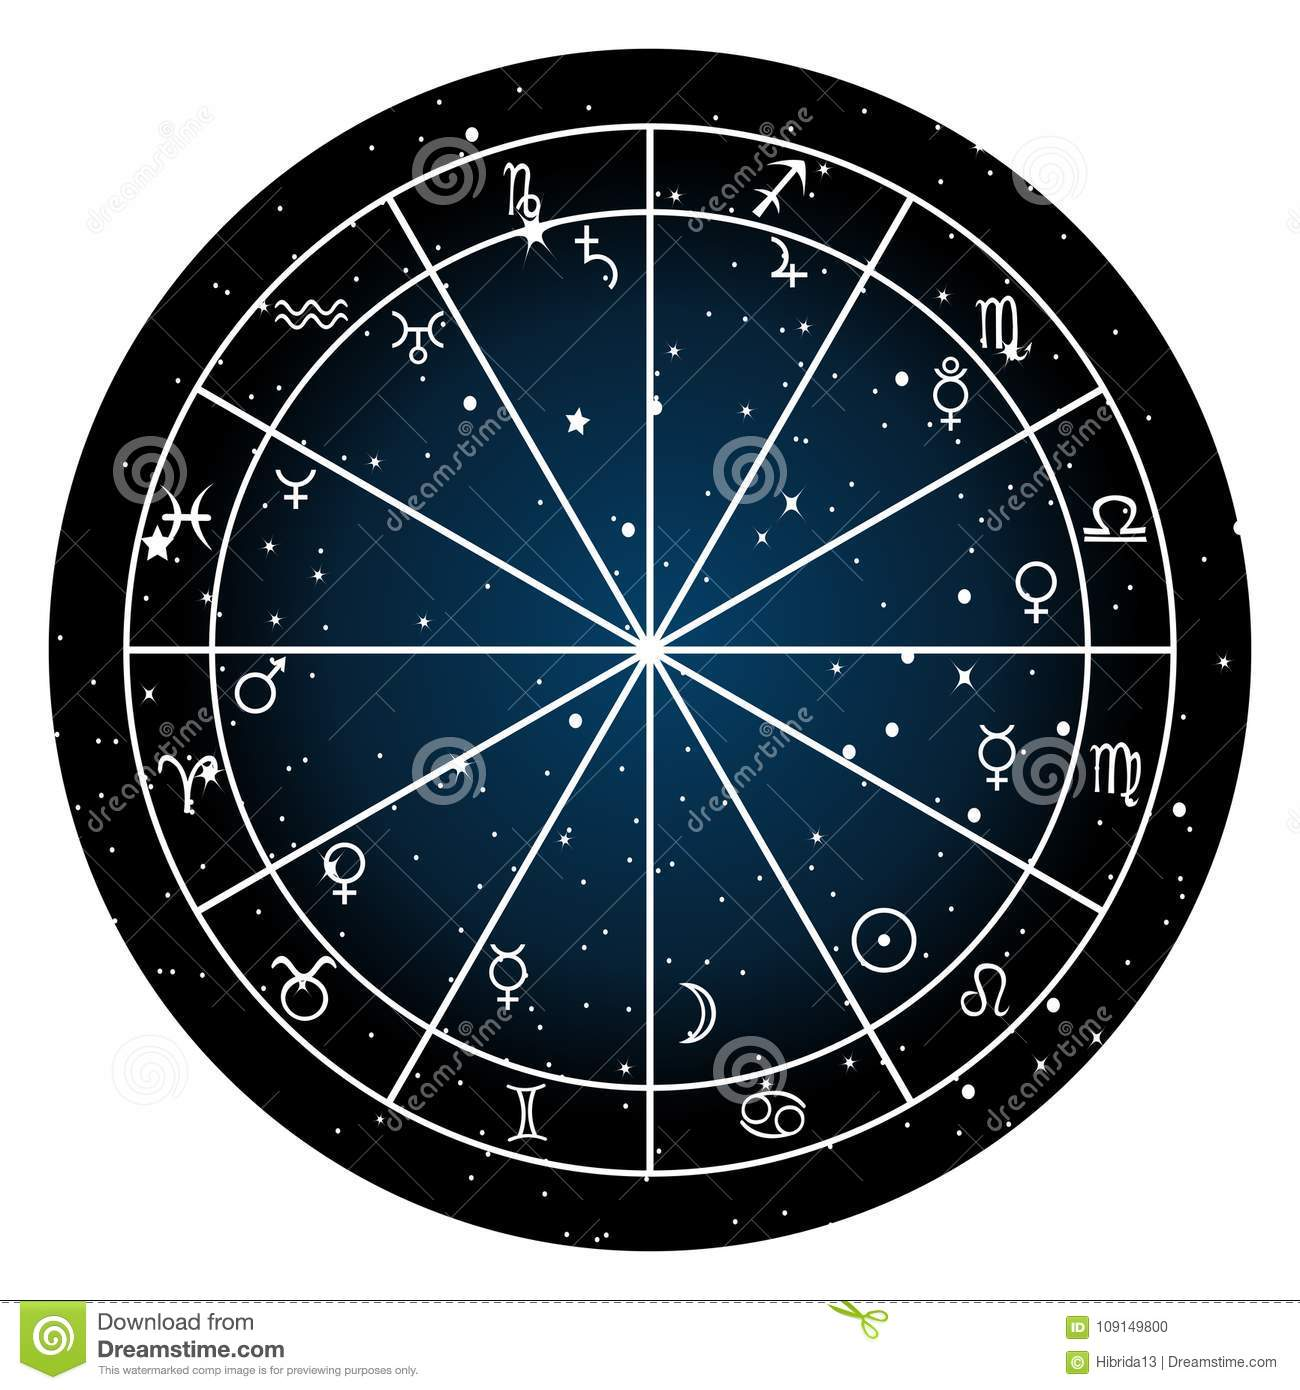 Astrology Zodiac With Natal Chart, Zodiac Signs And Planets Stock ...